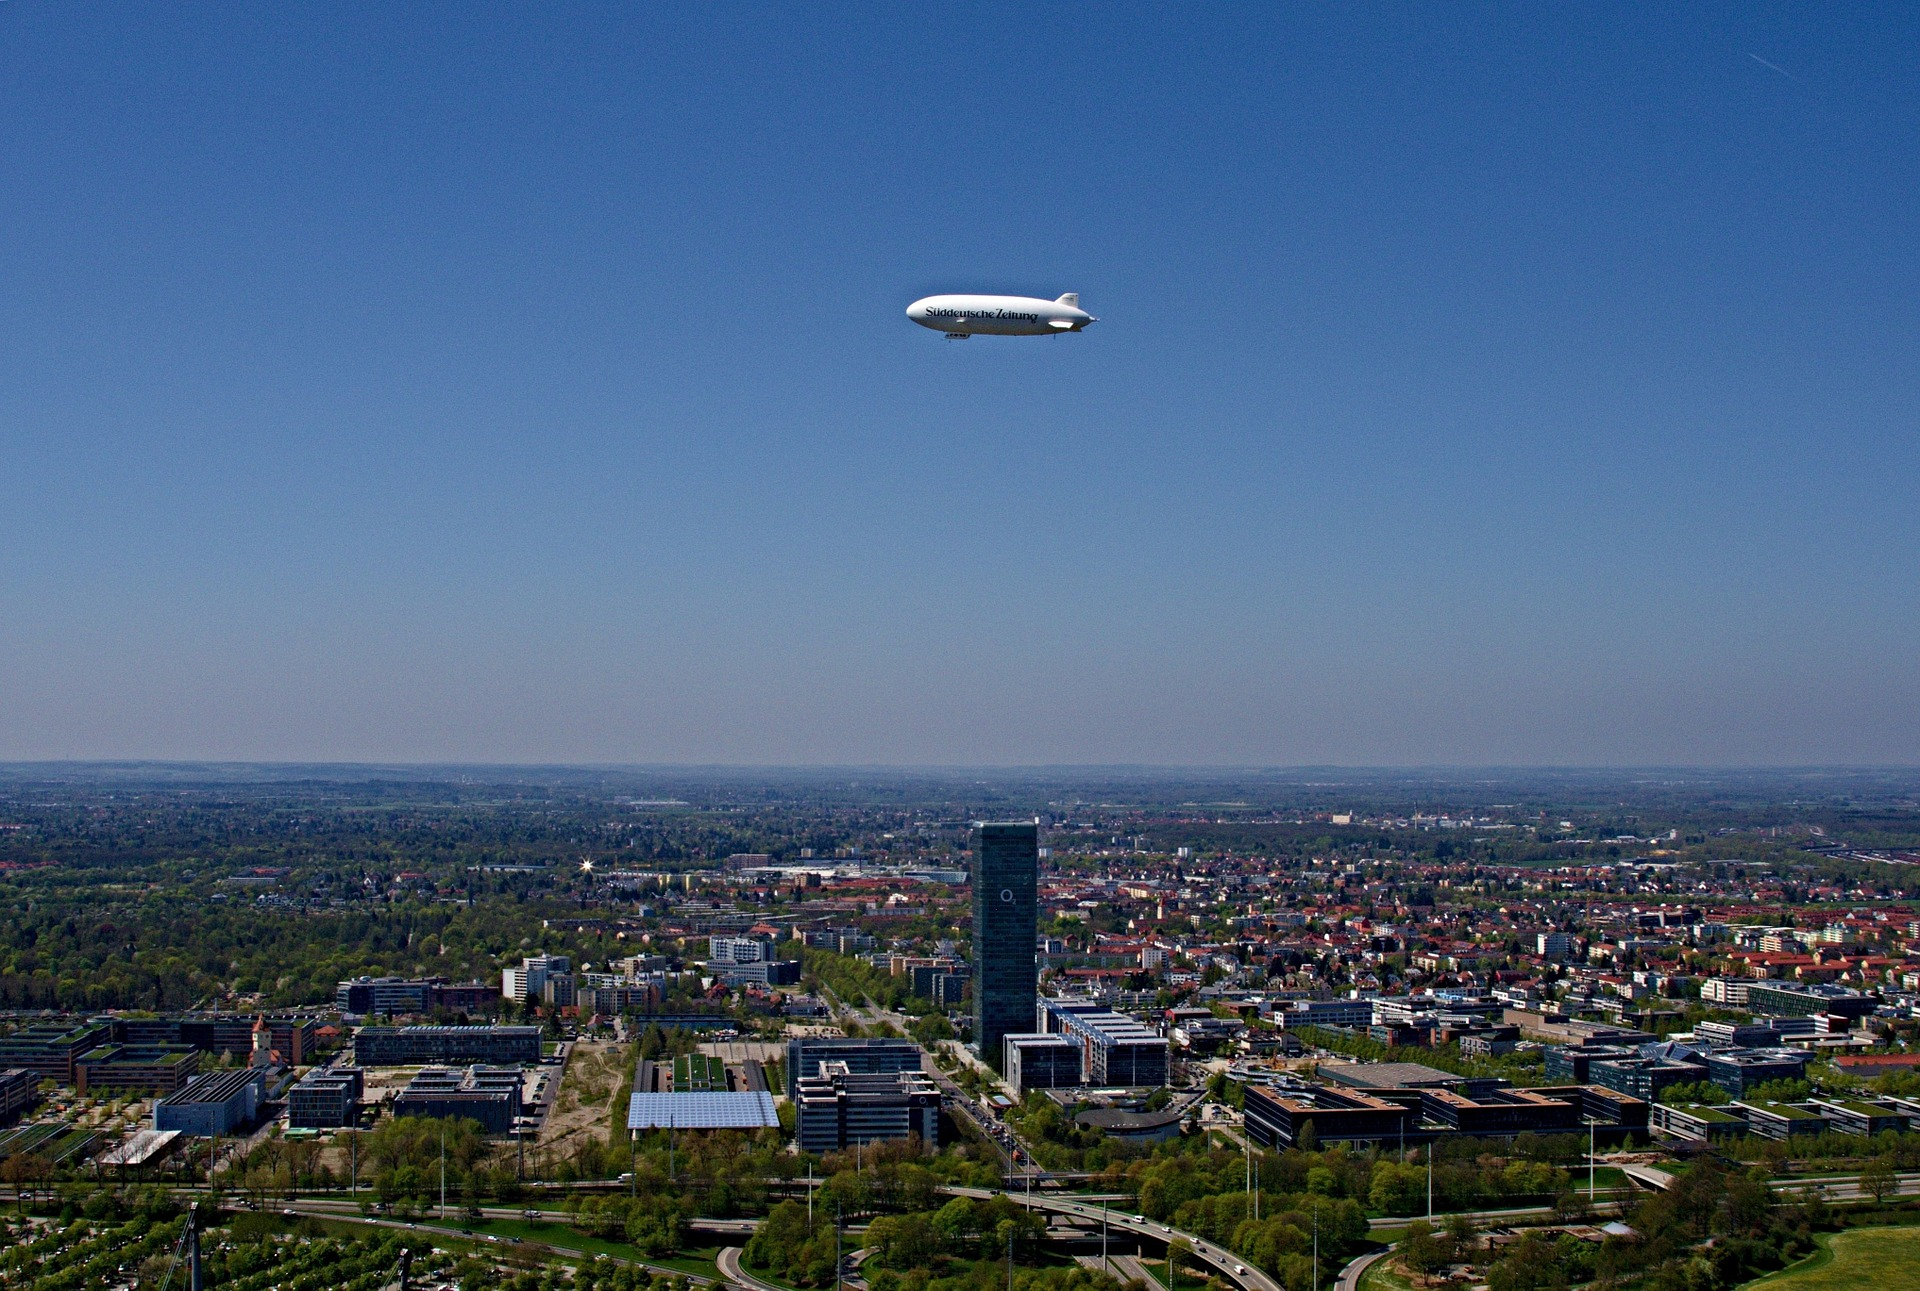 Zeppelin above Munich Olympic Park, Munich, Germany